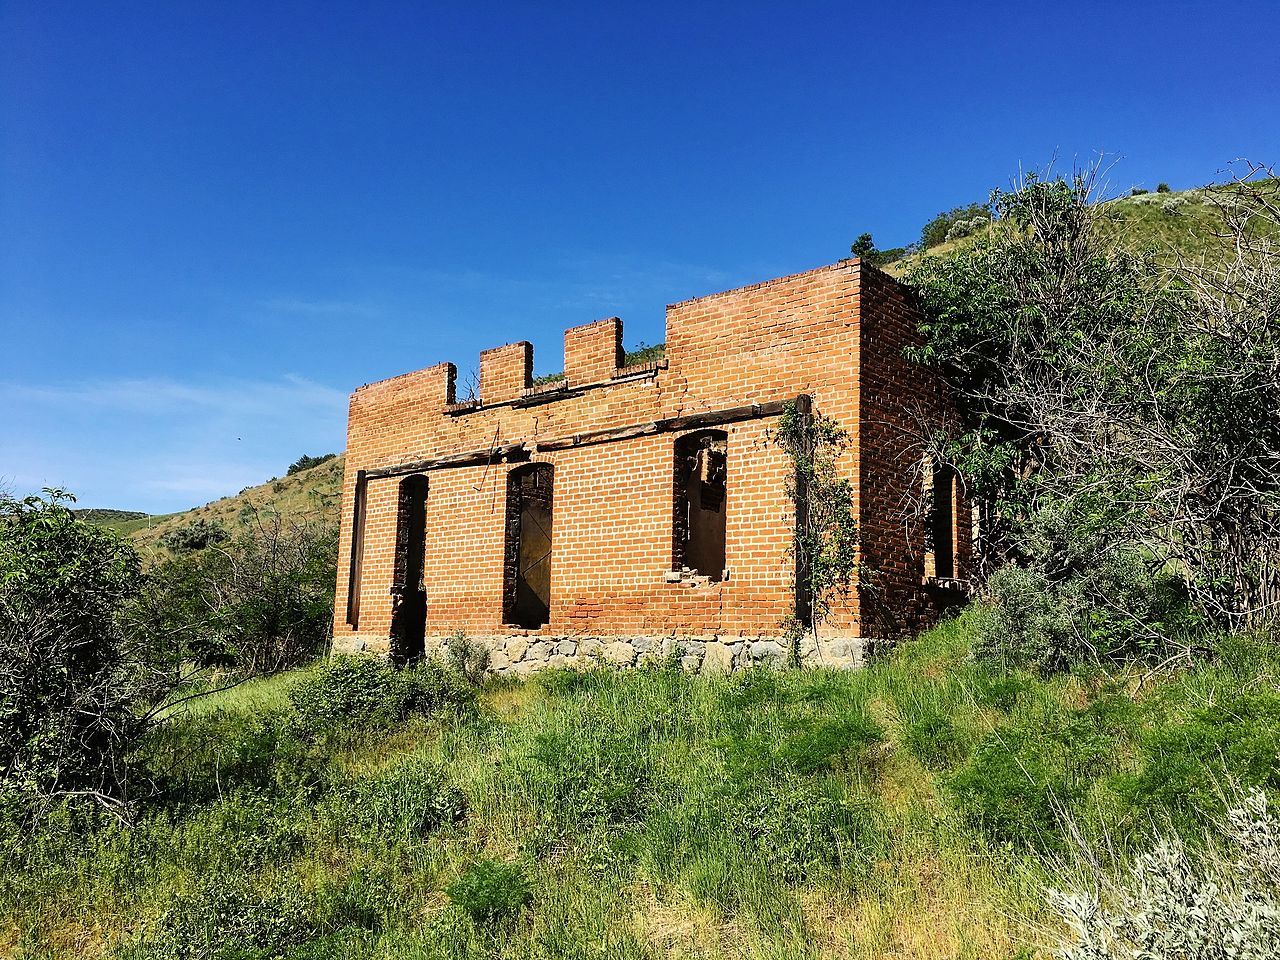 Chelan County Building Permits Issued